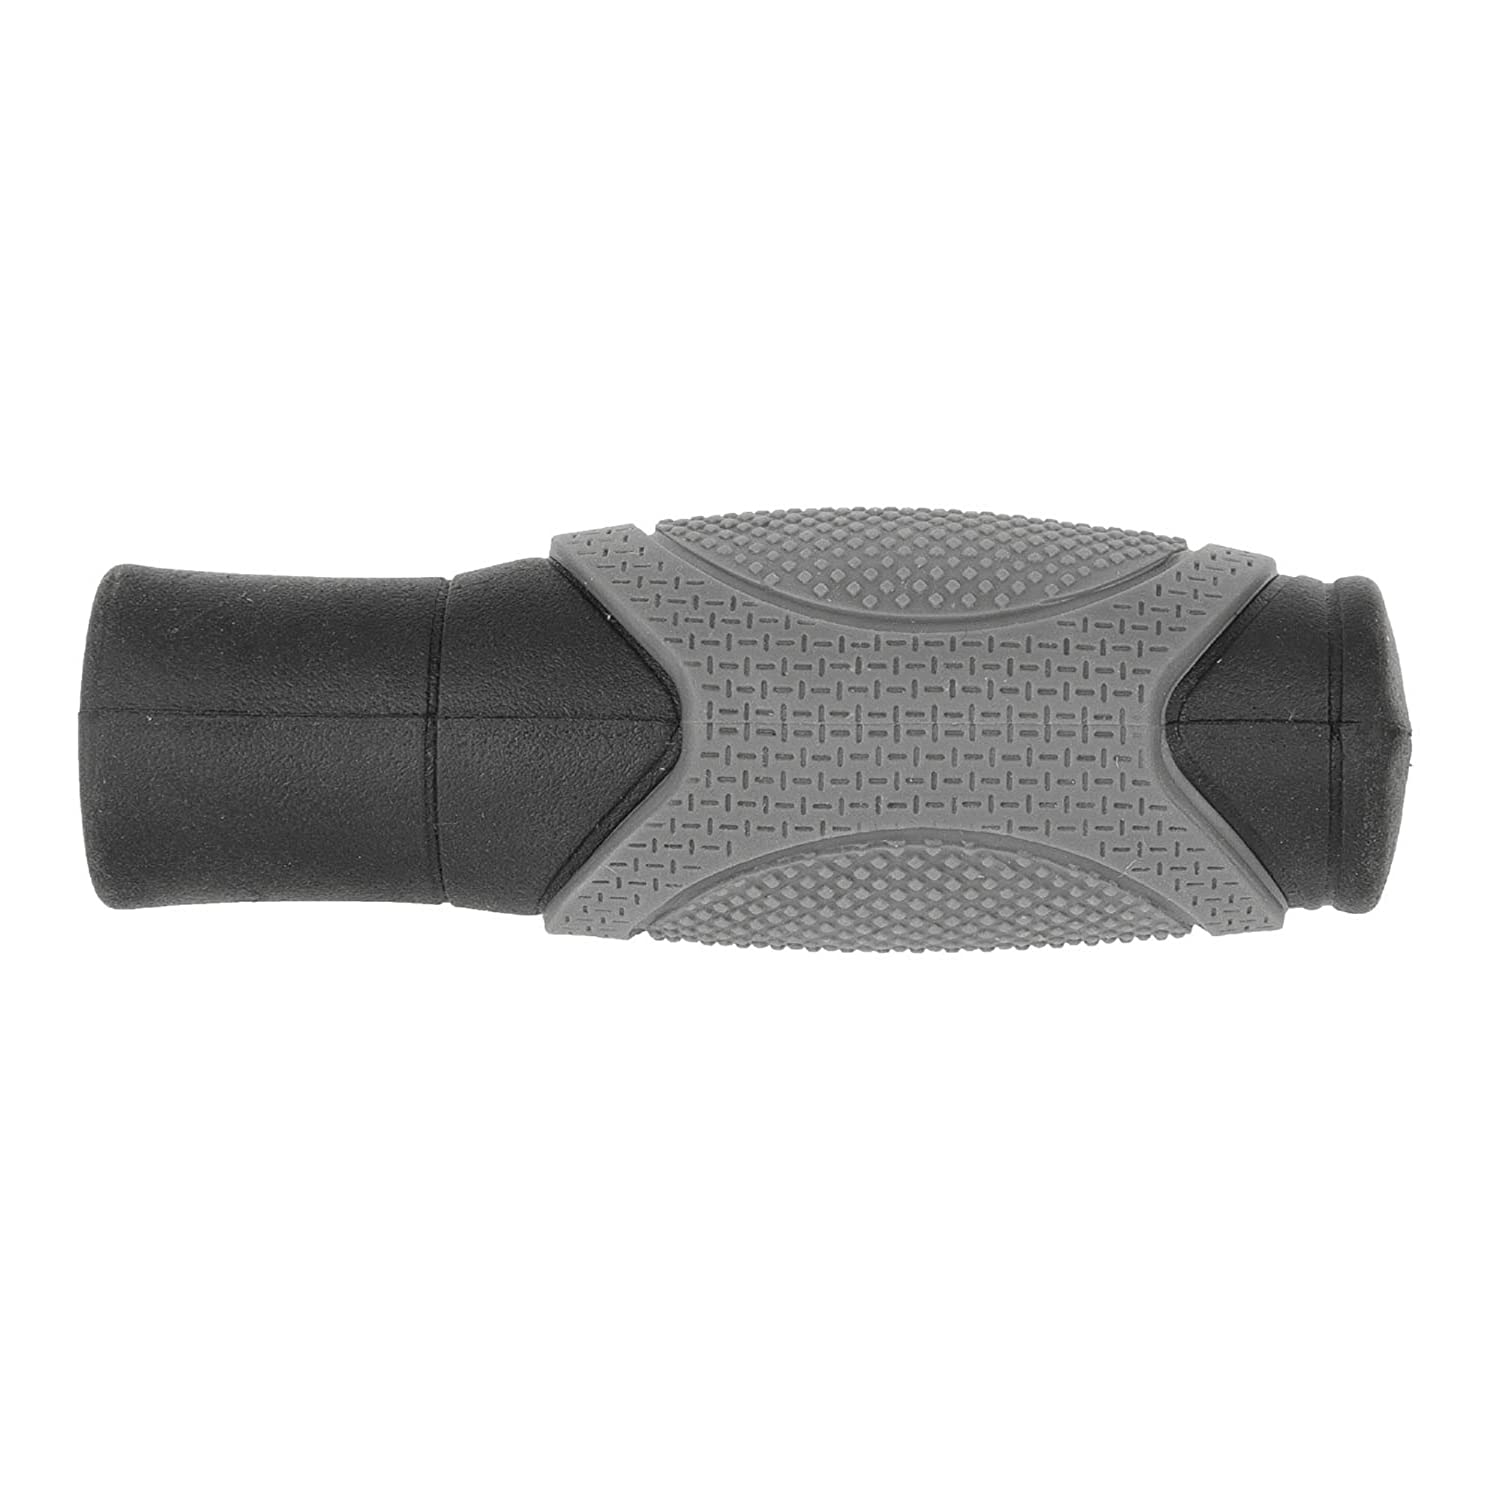 M-Wave Fat Boy 125 Grips Black//Grey Cycle Force Group 410229